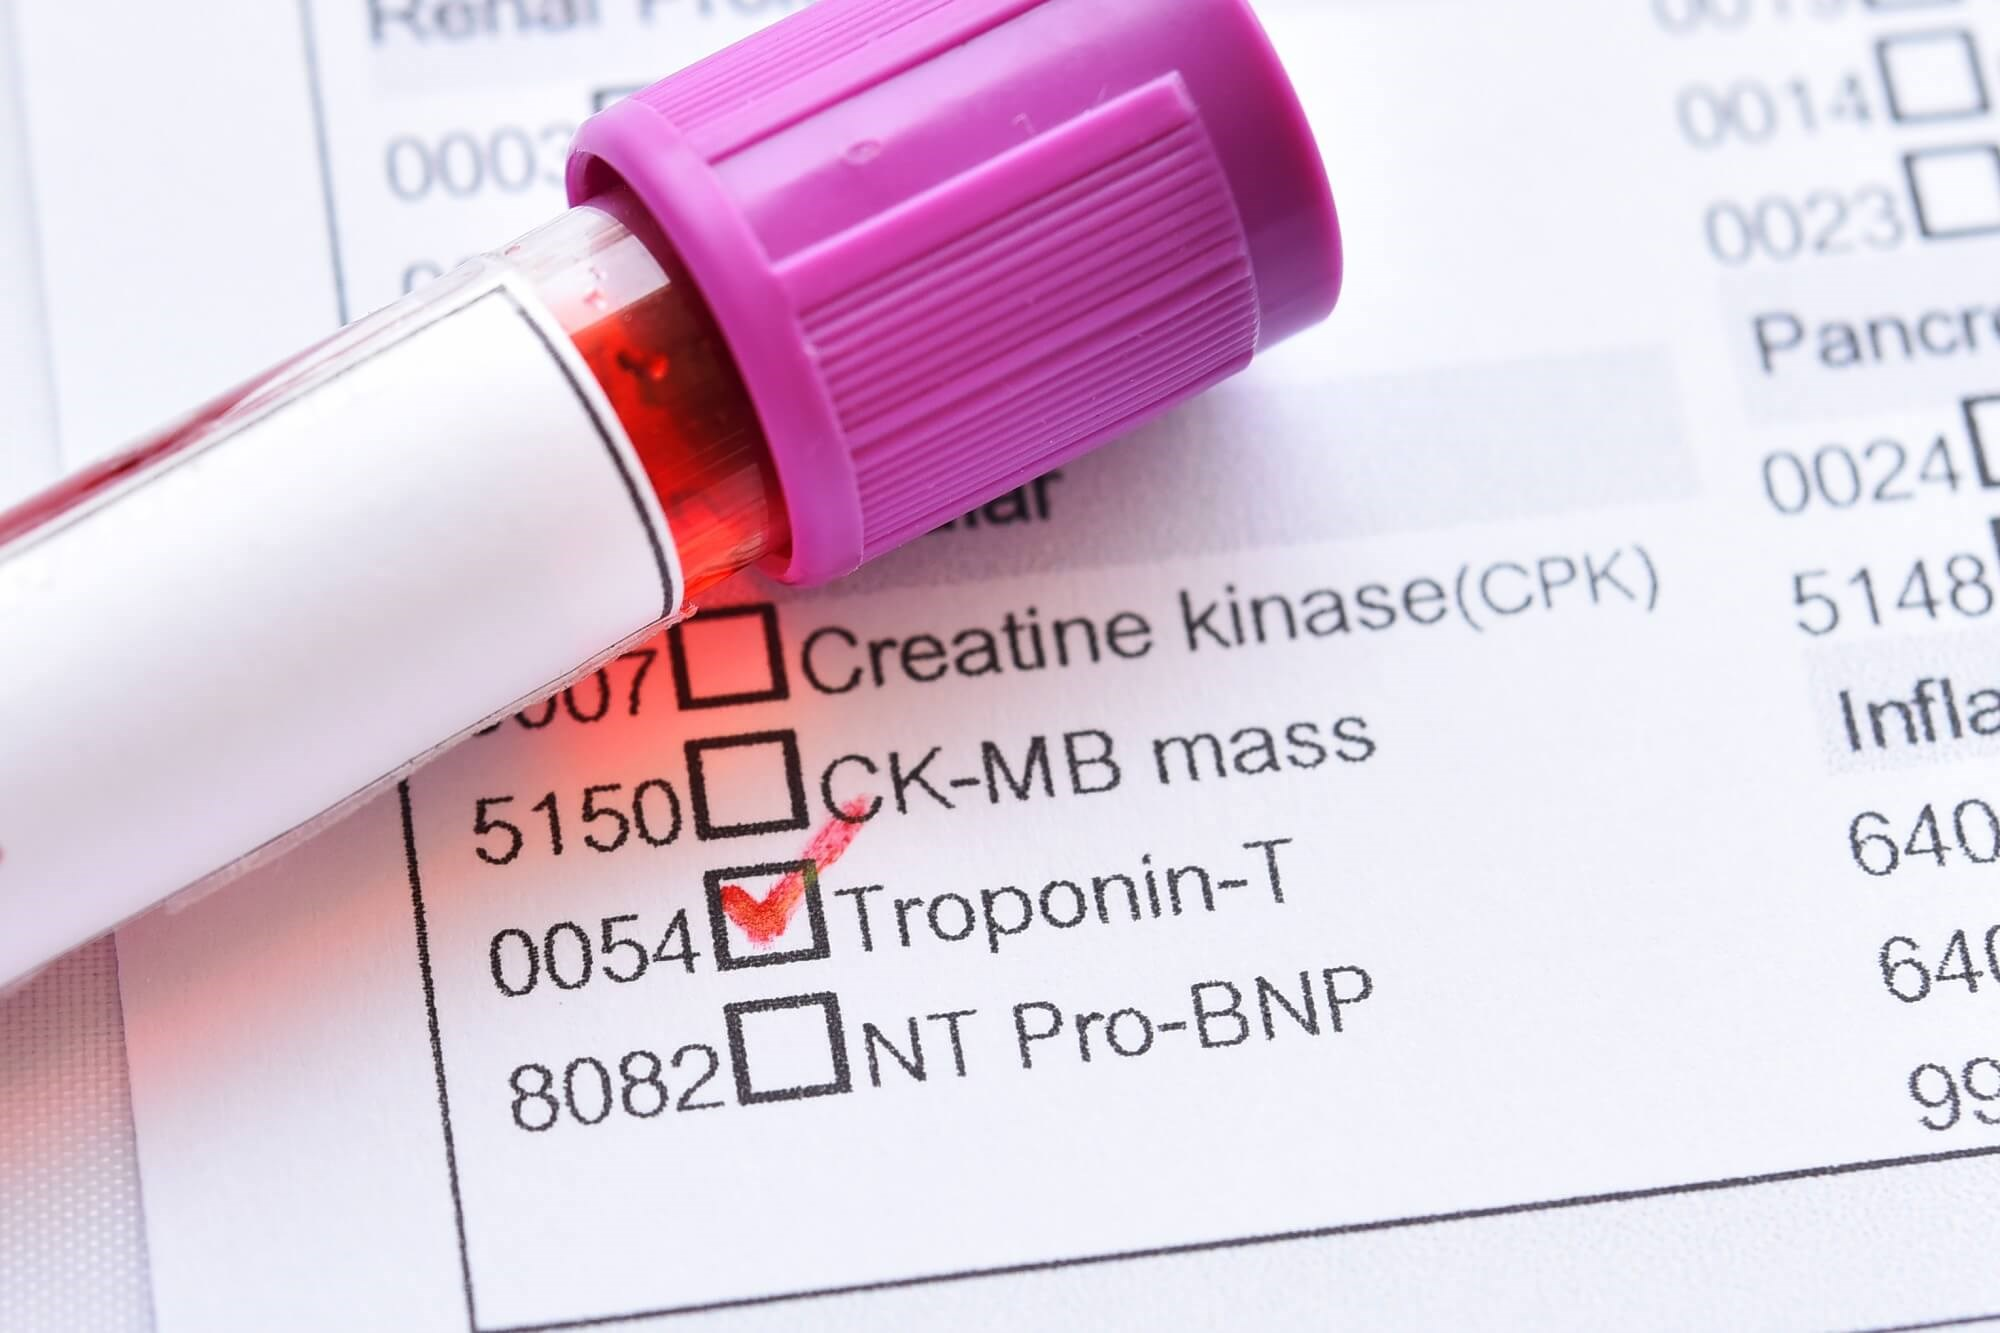 Although the methods used to detect serum cardiac troponin were not consistent, positive serum cardiac troponin was present in many patients.